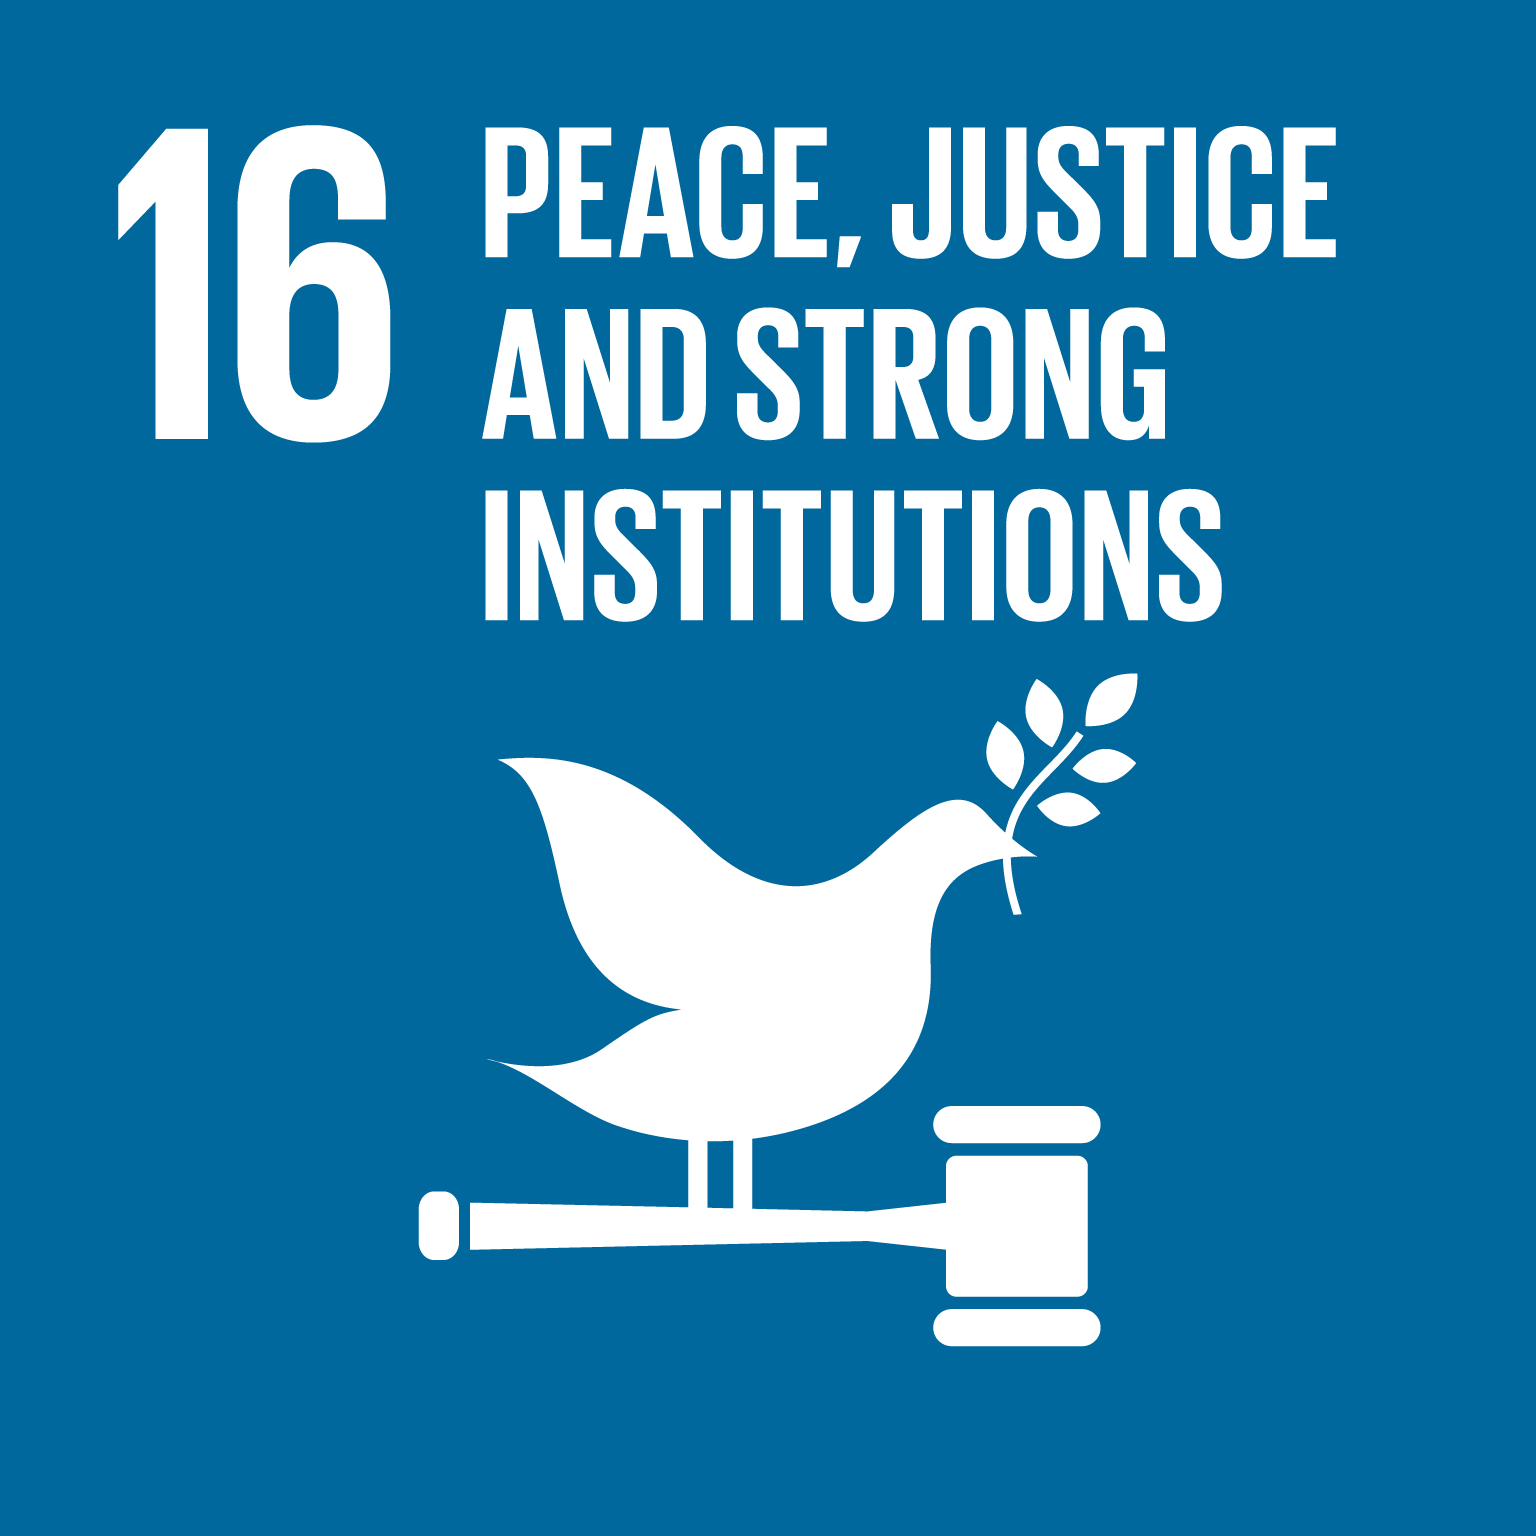 【SDGs logo】PEACE, JUSTICE AND STRONG INSTITUTIONS